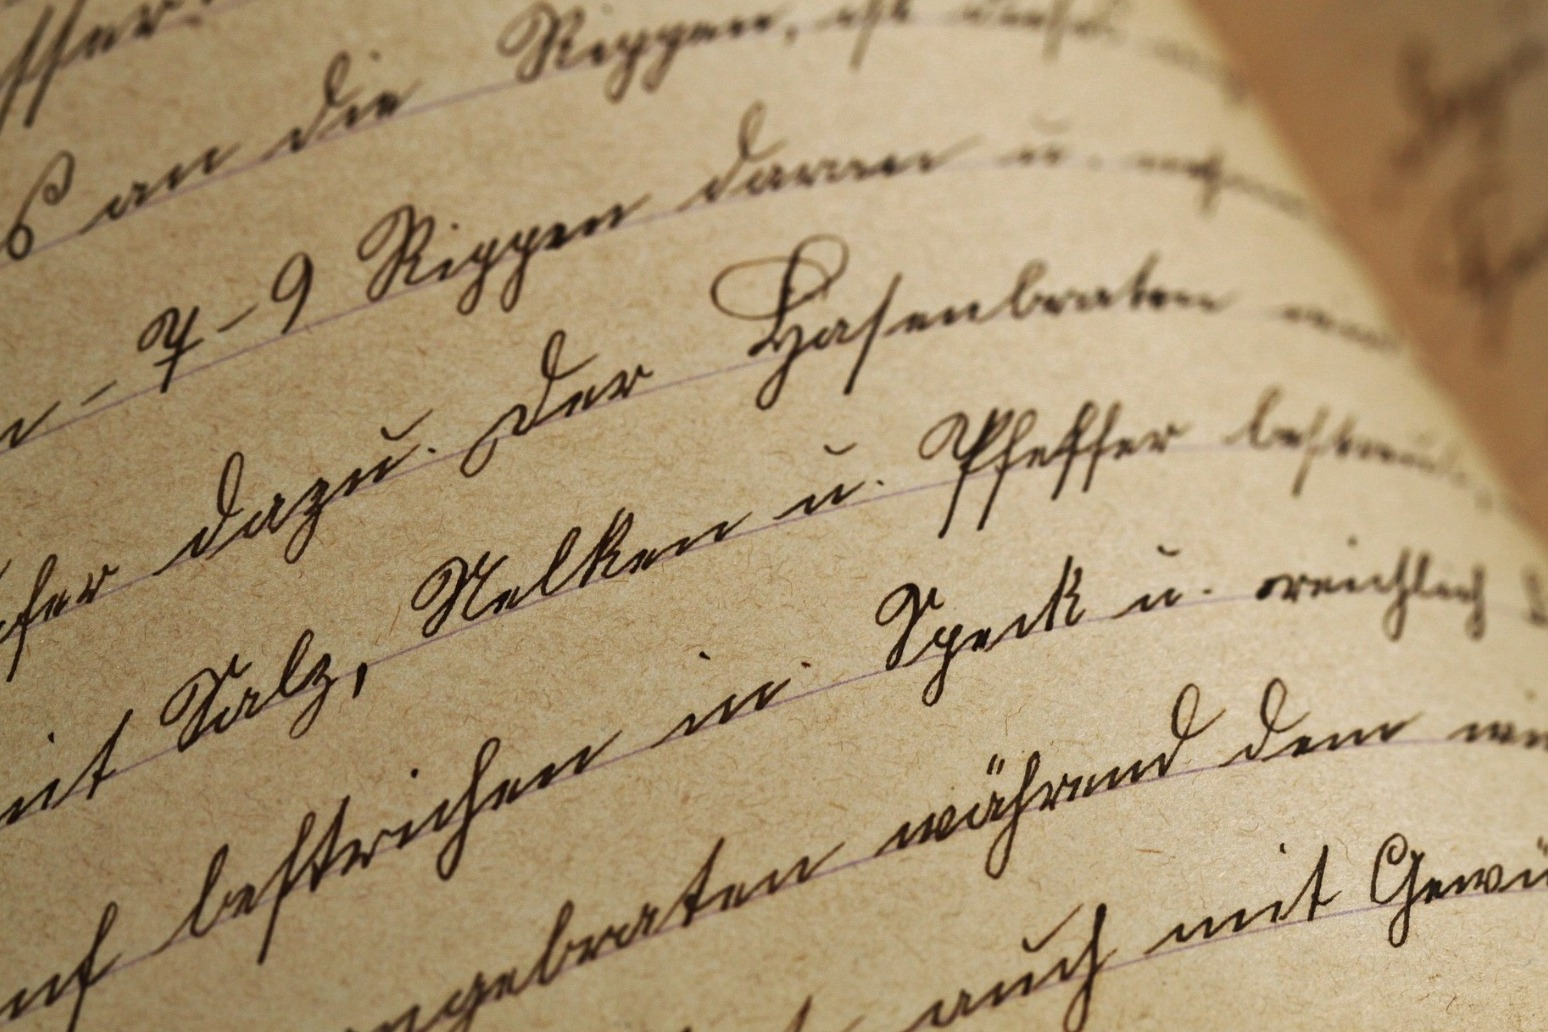 POET\'S LETTERS TO \'MUSE\' REVEALED AFTER 60 YEARS